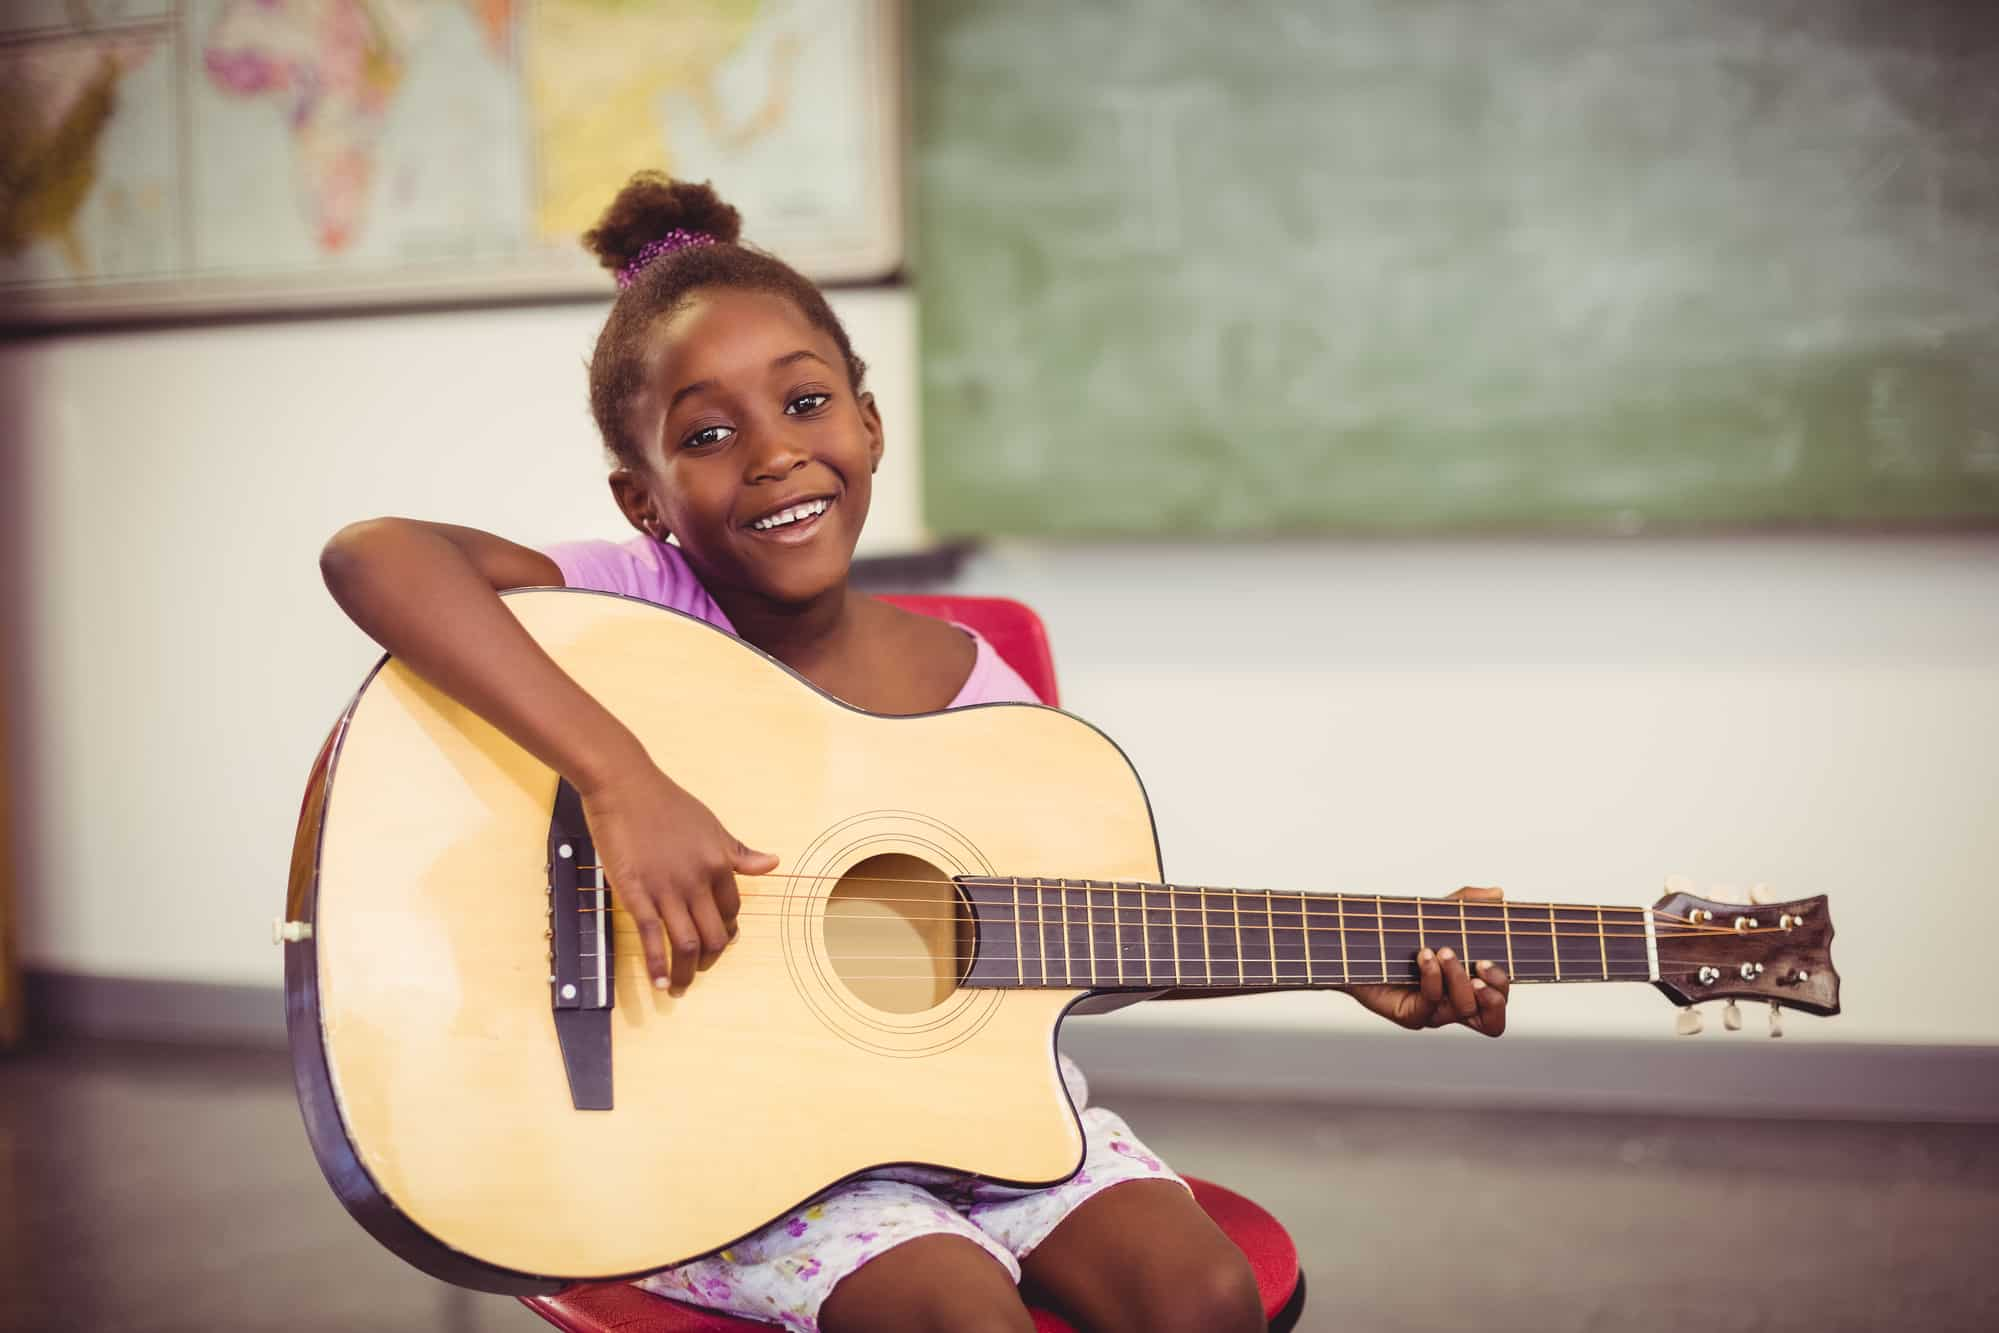 Portrait of smiling schoolgirl playing guitar in classroom at school